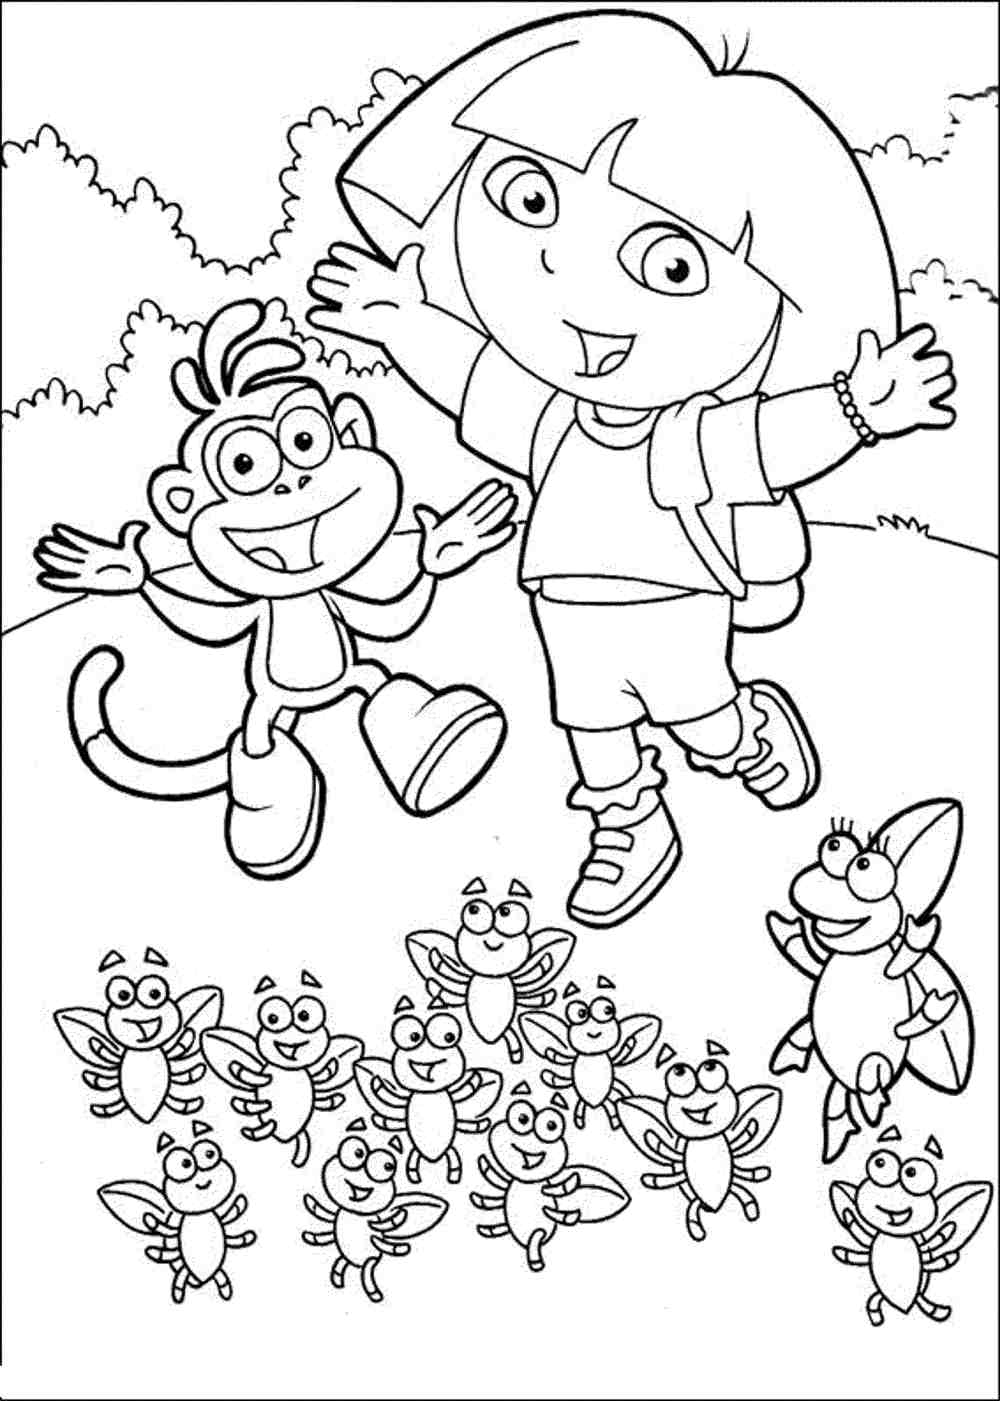 pictures of dora to color dora the explorer coloring pages color of pictures to dora